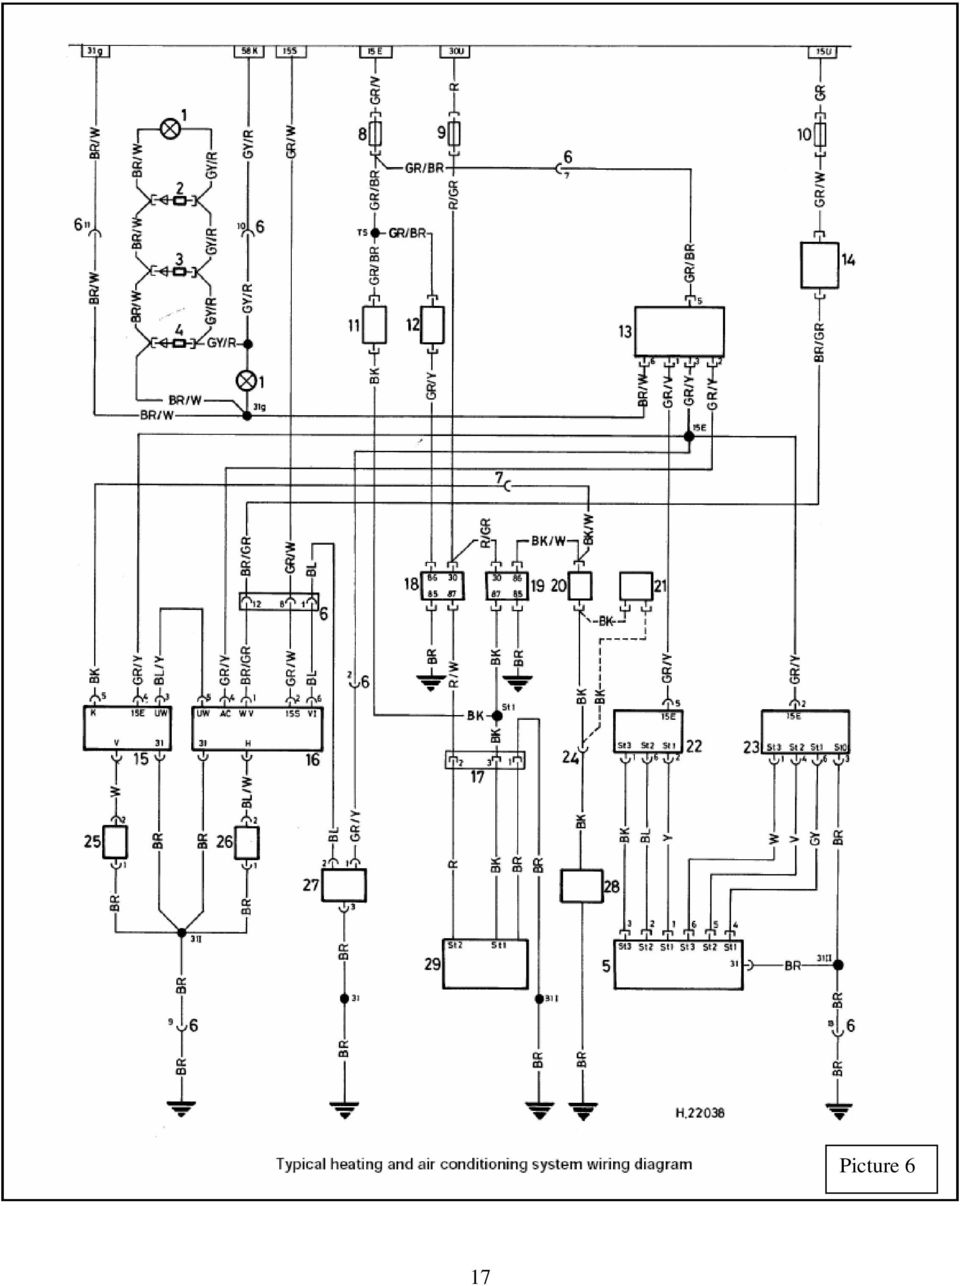 hight resolution of 18 key to air conditioning system wiring diagram picture 6 1 light for heater controls 2 light diode iii 3 light diode ii 4 light diode i 5